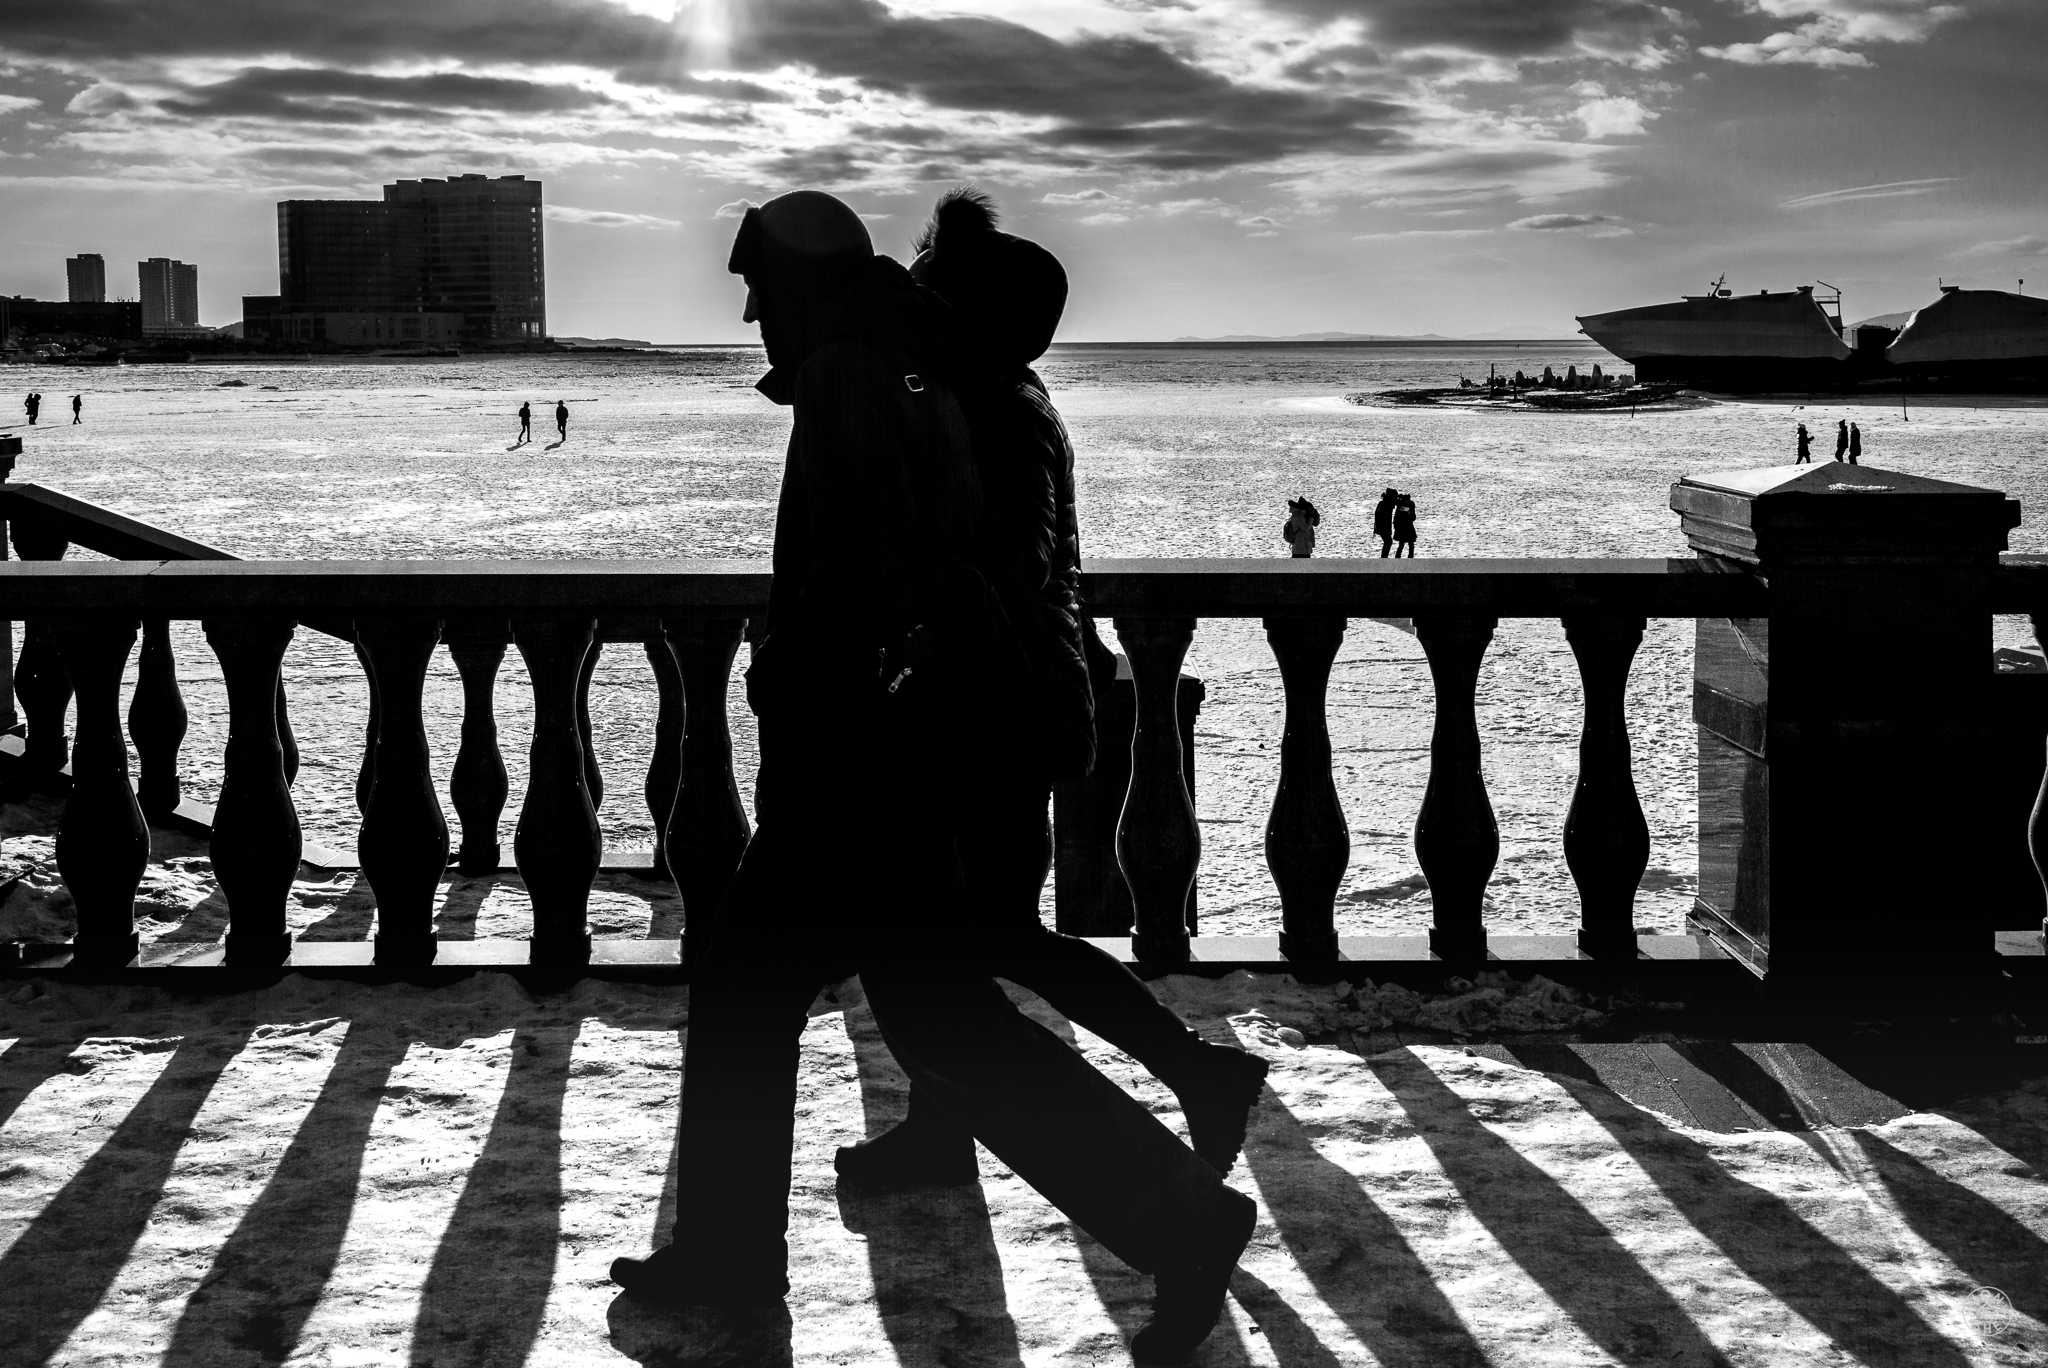 """""""Winter Beach"""". While a very busy spot in summer, in winter the main beach promenade in the city was mostly deserted. There were only a few families out on the frozen sea in the afternoon. Vladivostok, Primorsky Krai, Far East Russia. January 2017. © Jon She. Leica M (Typ 240), Leica Summilux 35mm f/1.4 ASPH (FLE)."""